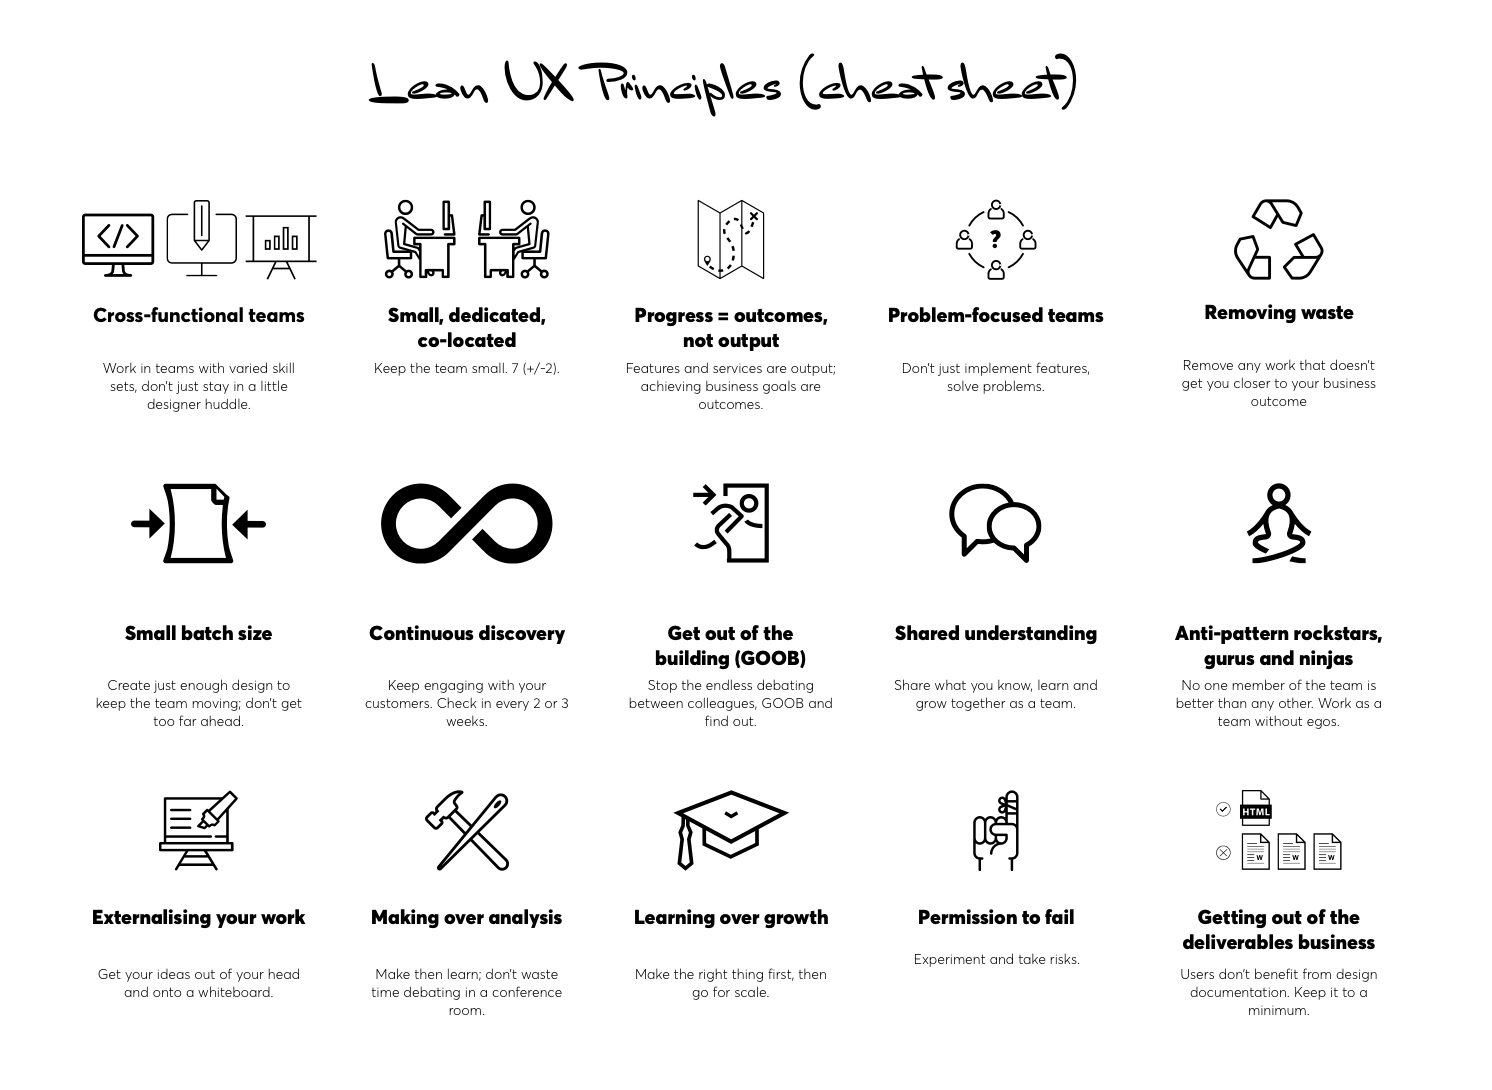 The 15 essential Lean UX principles guide product teams.